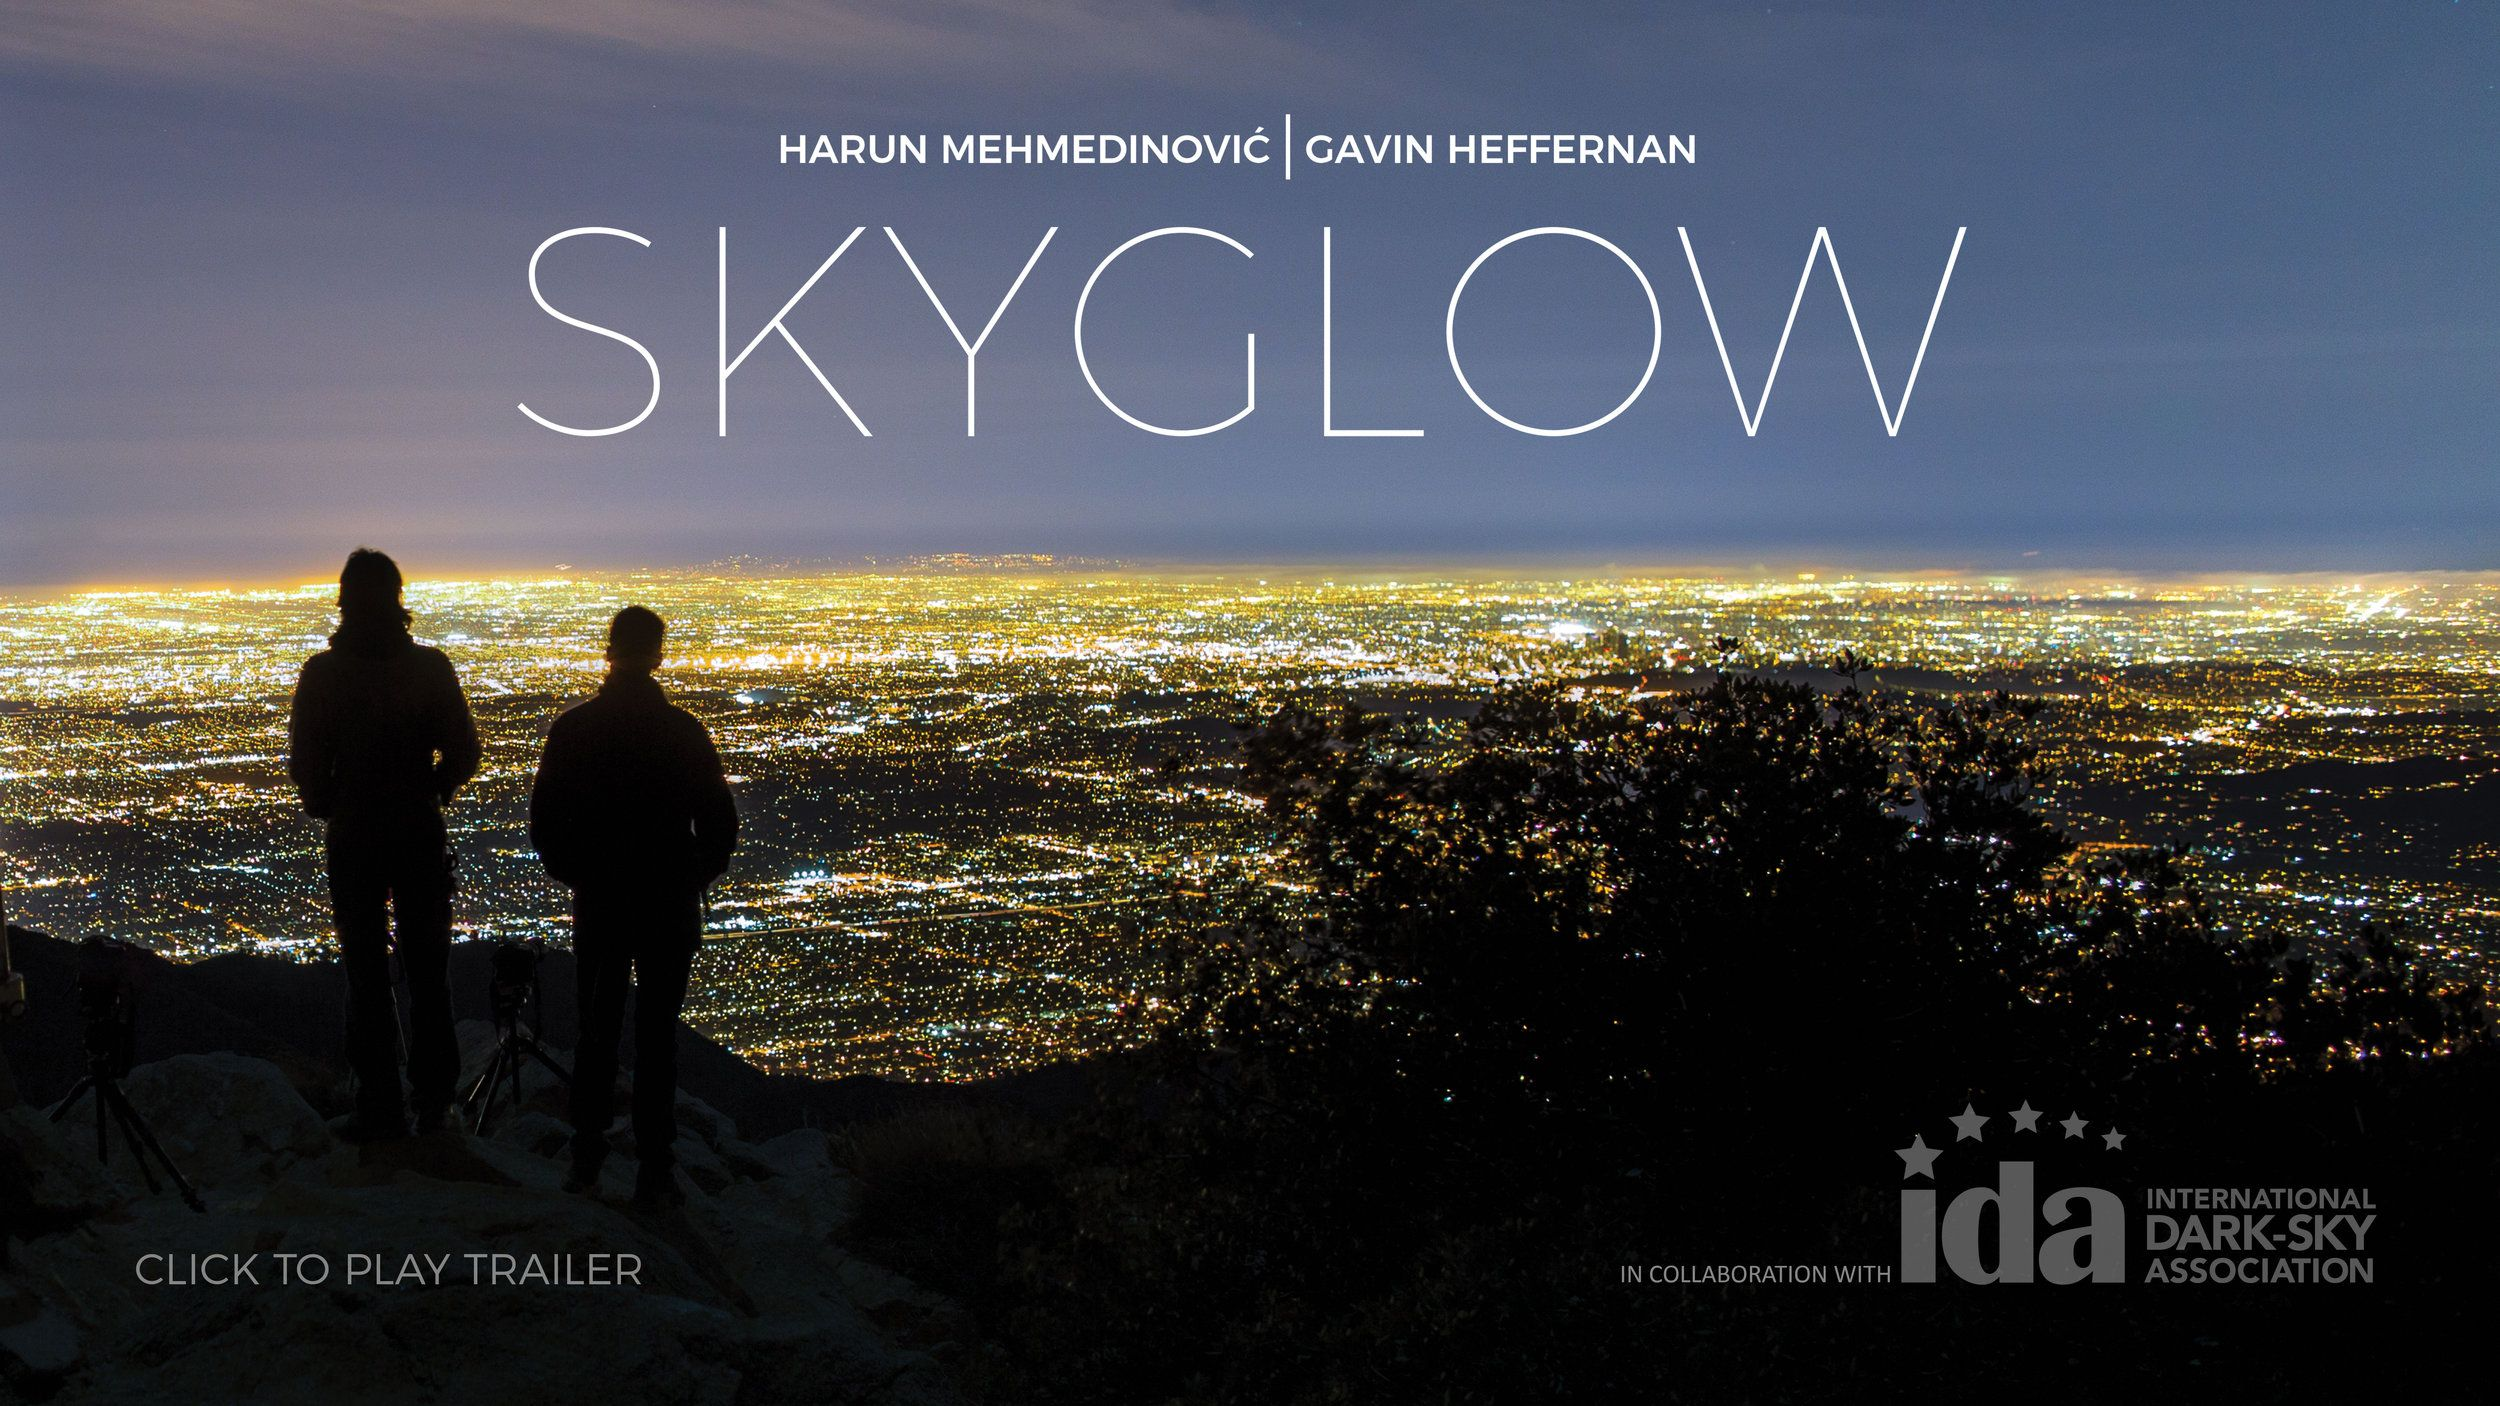 Skyglow Light Pollution Awareness Project In Collaboration With International Dark Sky Association Dark Skies Light Pollution Pollution